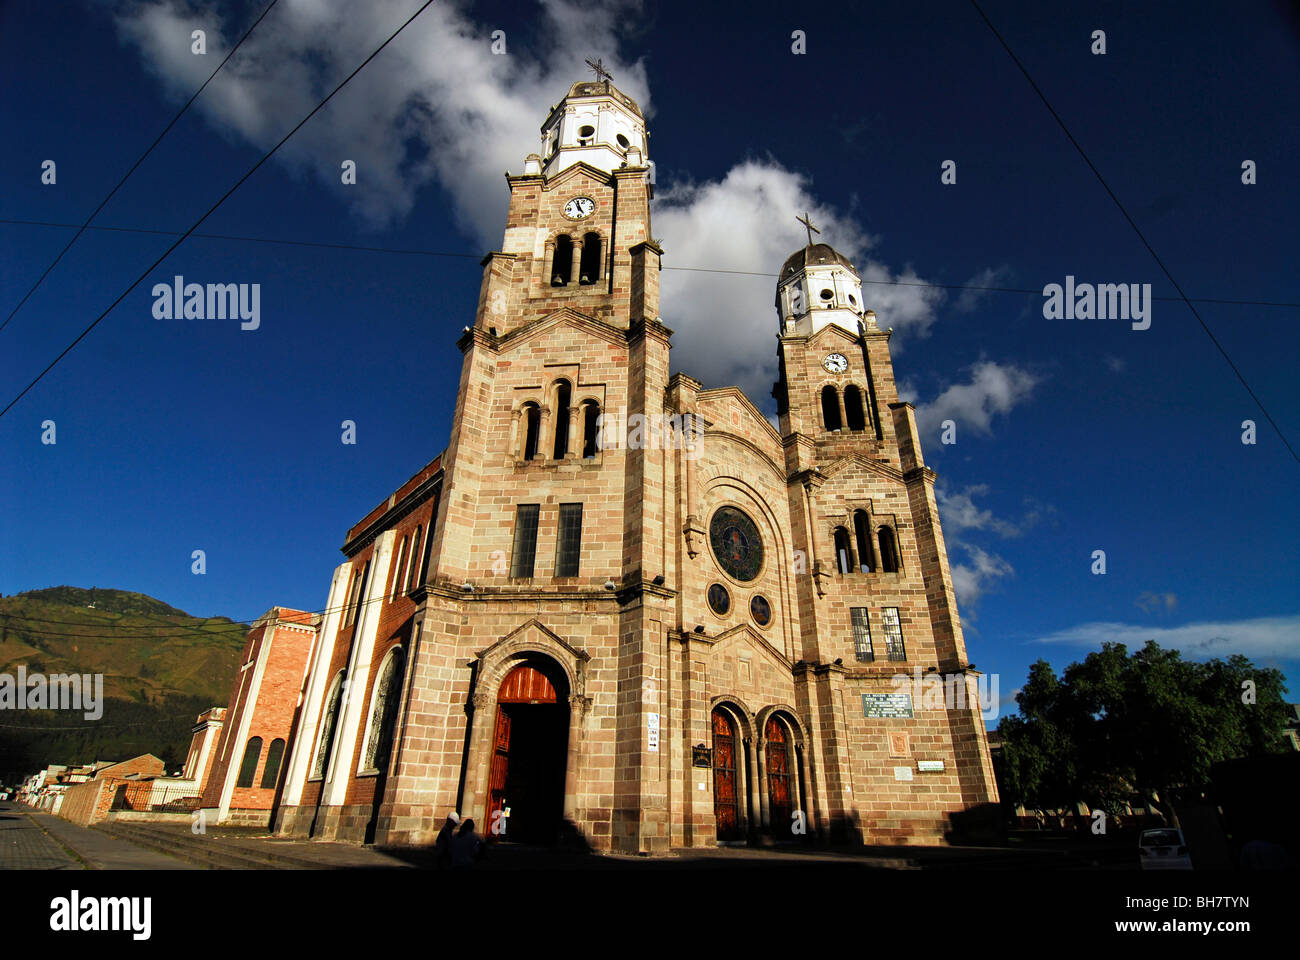 Ecuador, Ibarra, Santo Domingo Church, from the Roman Catholic Diocese, in the center of Ibarra - Stock Image